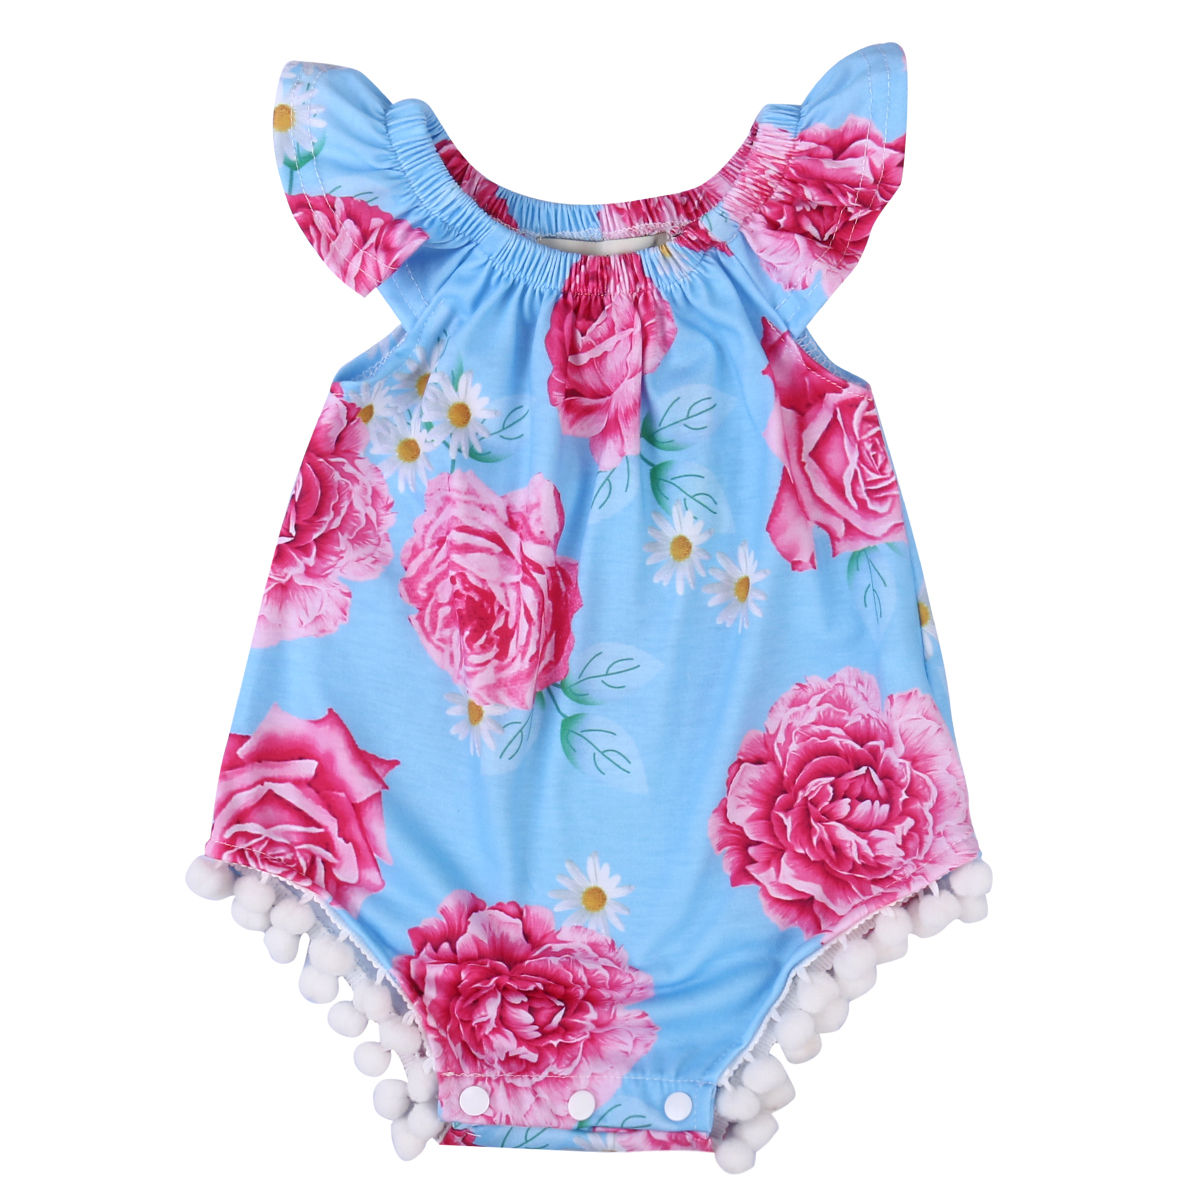 Lovely Newborn Baby Girl Clothes Floral Romper 2017 Summer Sleeveless Infant Bebes Toddler Kids Jumpsuit Outfit Sunsuit 0-24M newborn infant baby girl clothes strap lace floral romper jumpsuit outfit summer cotton backless one pieces outfit baby onesie page 2